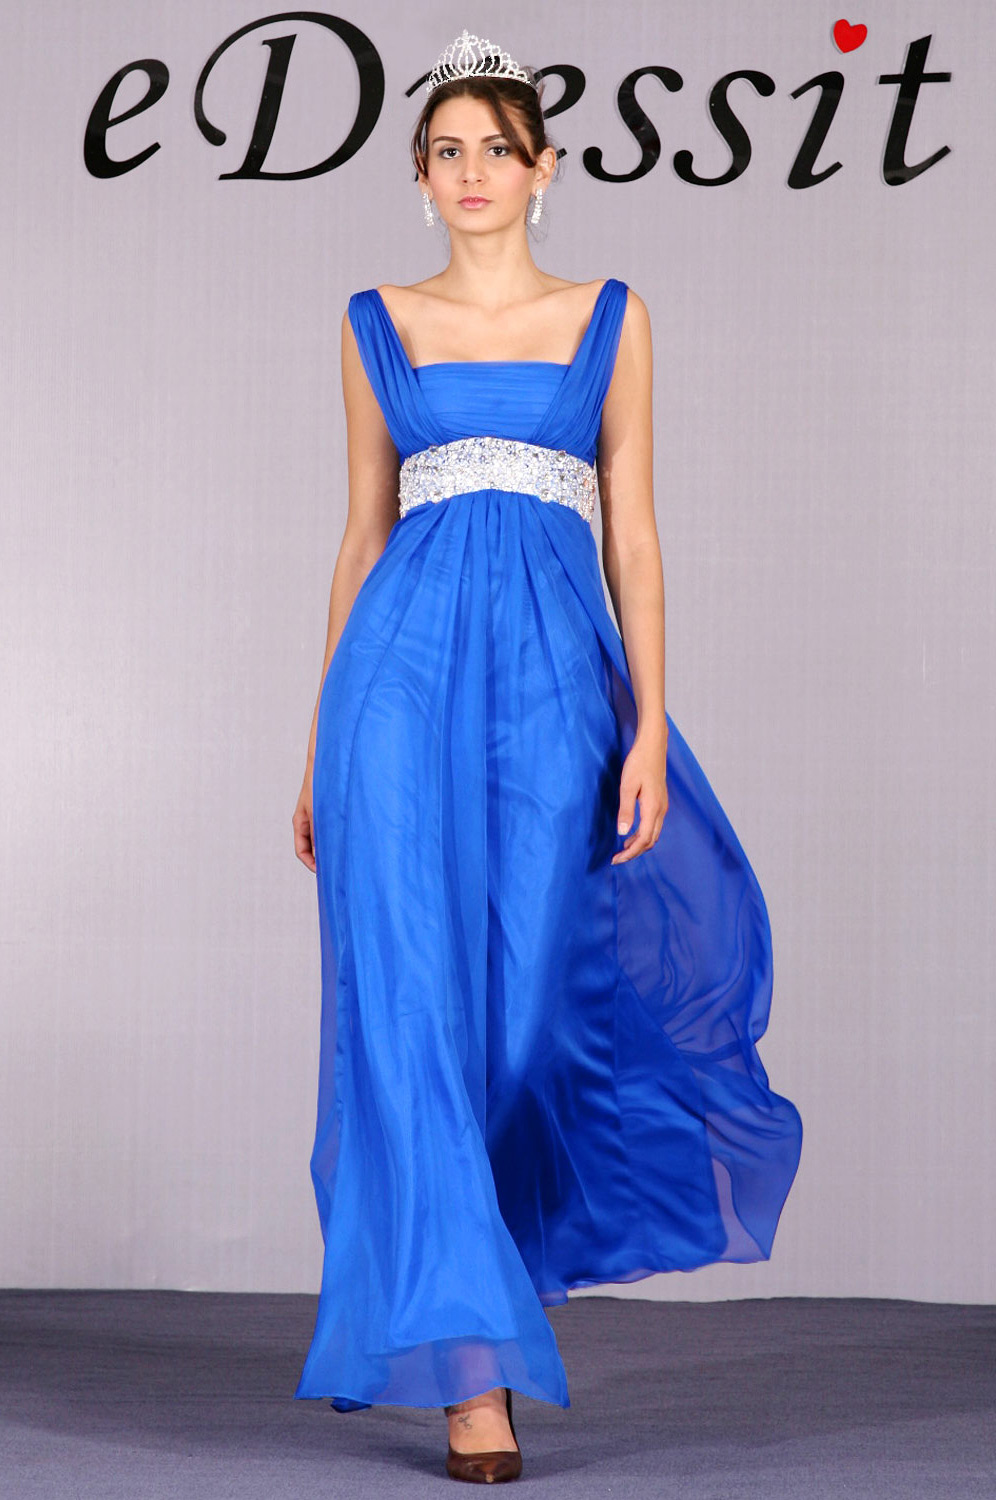 On sale !! eDressit blue Prom Gown Evening Dress (00092305f)